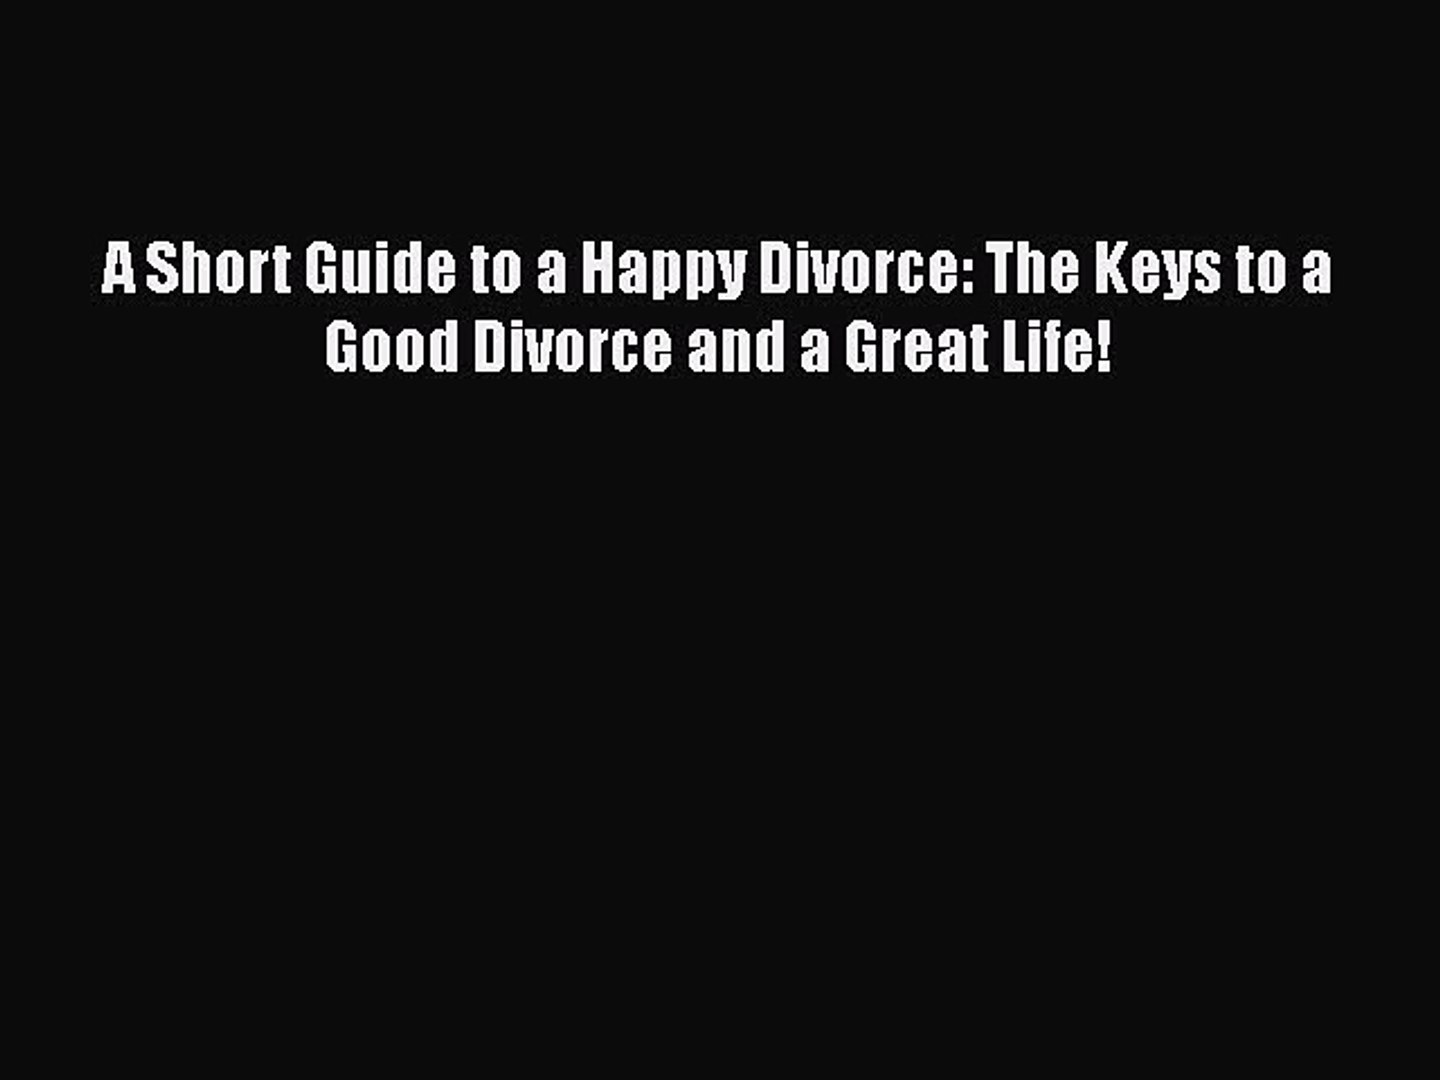 [PDF] A Short Guide to a Happy Divorce: The Keys to a Good Divorce and a Great Life! [Download]